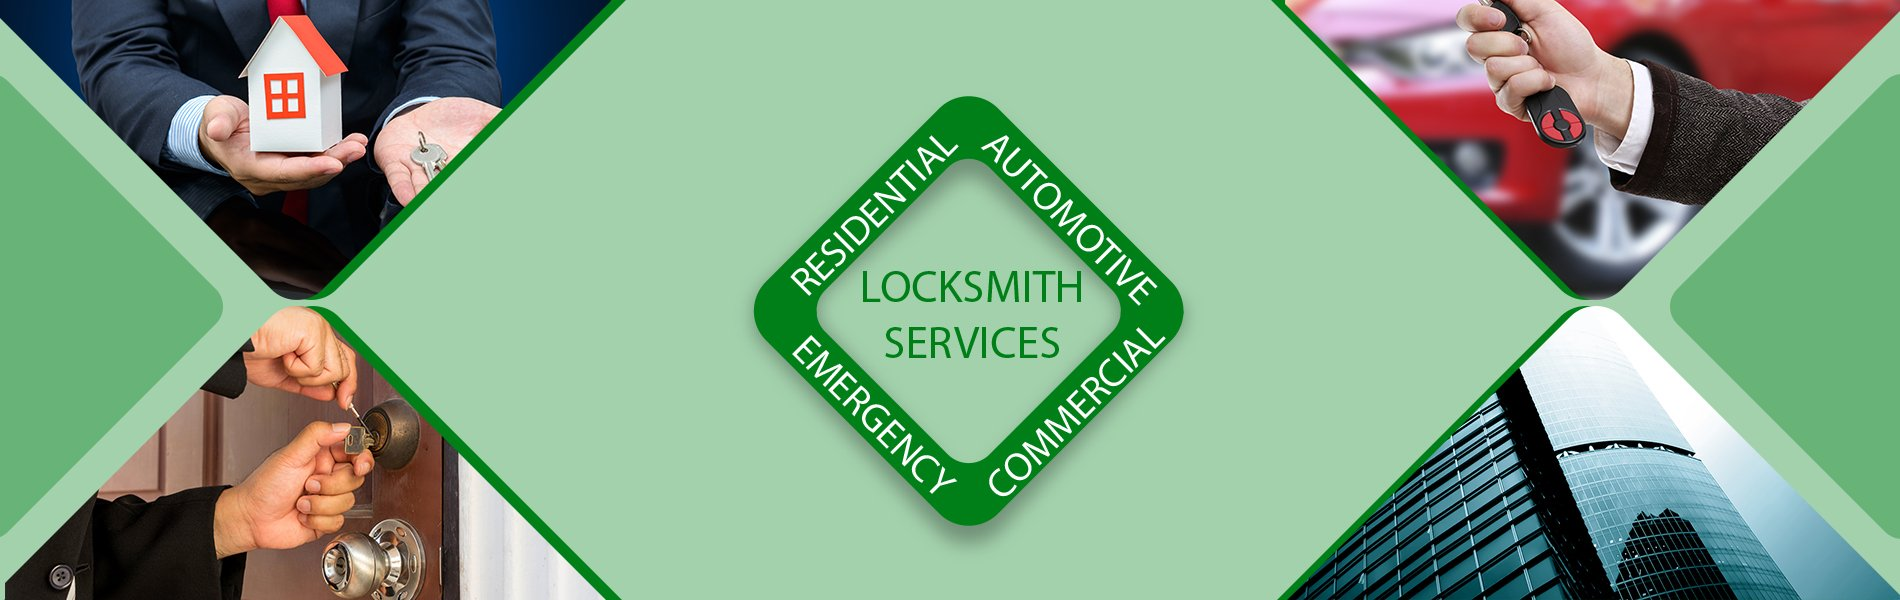 Little Neck Locksmith Service Little Neck, NY 718-971-9657